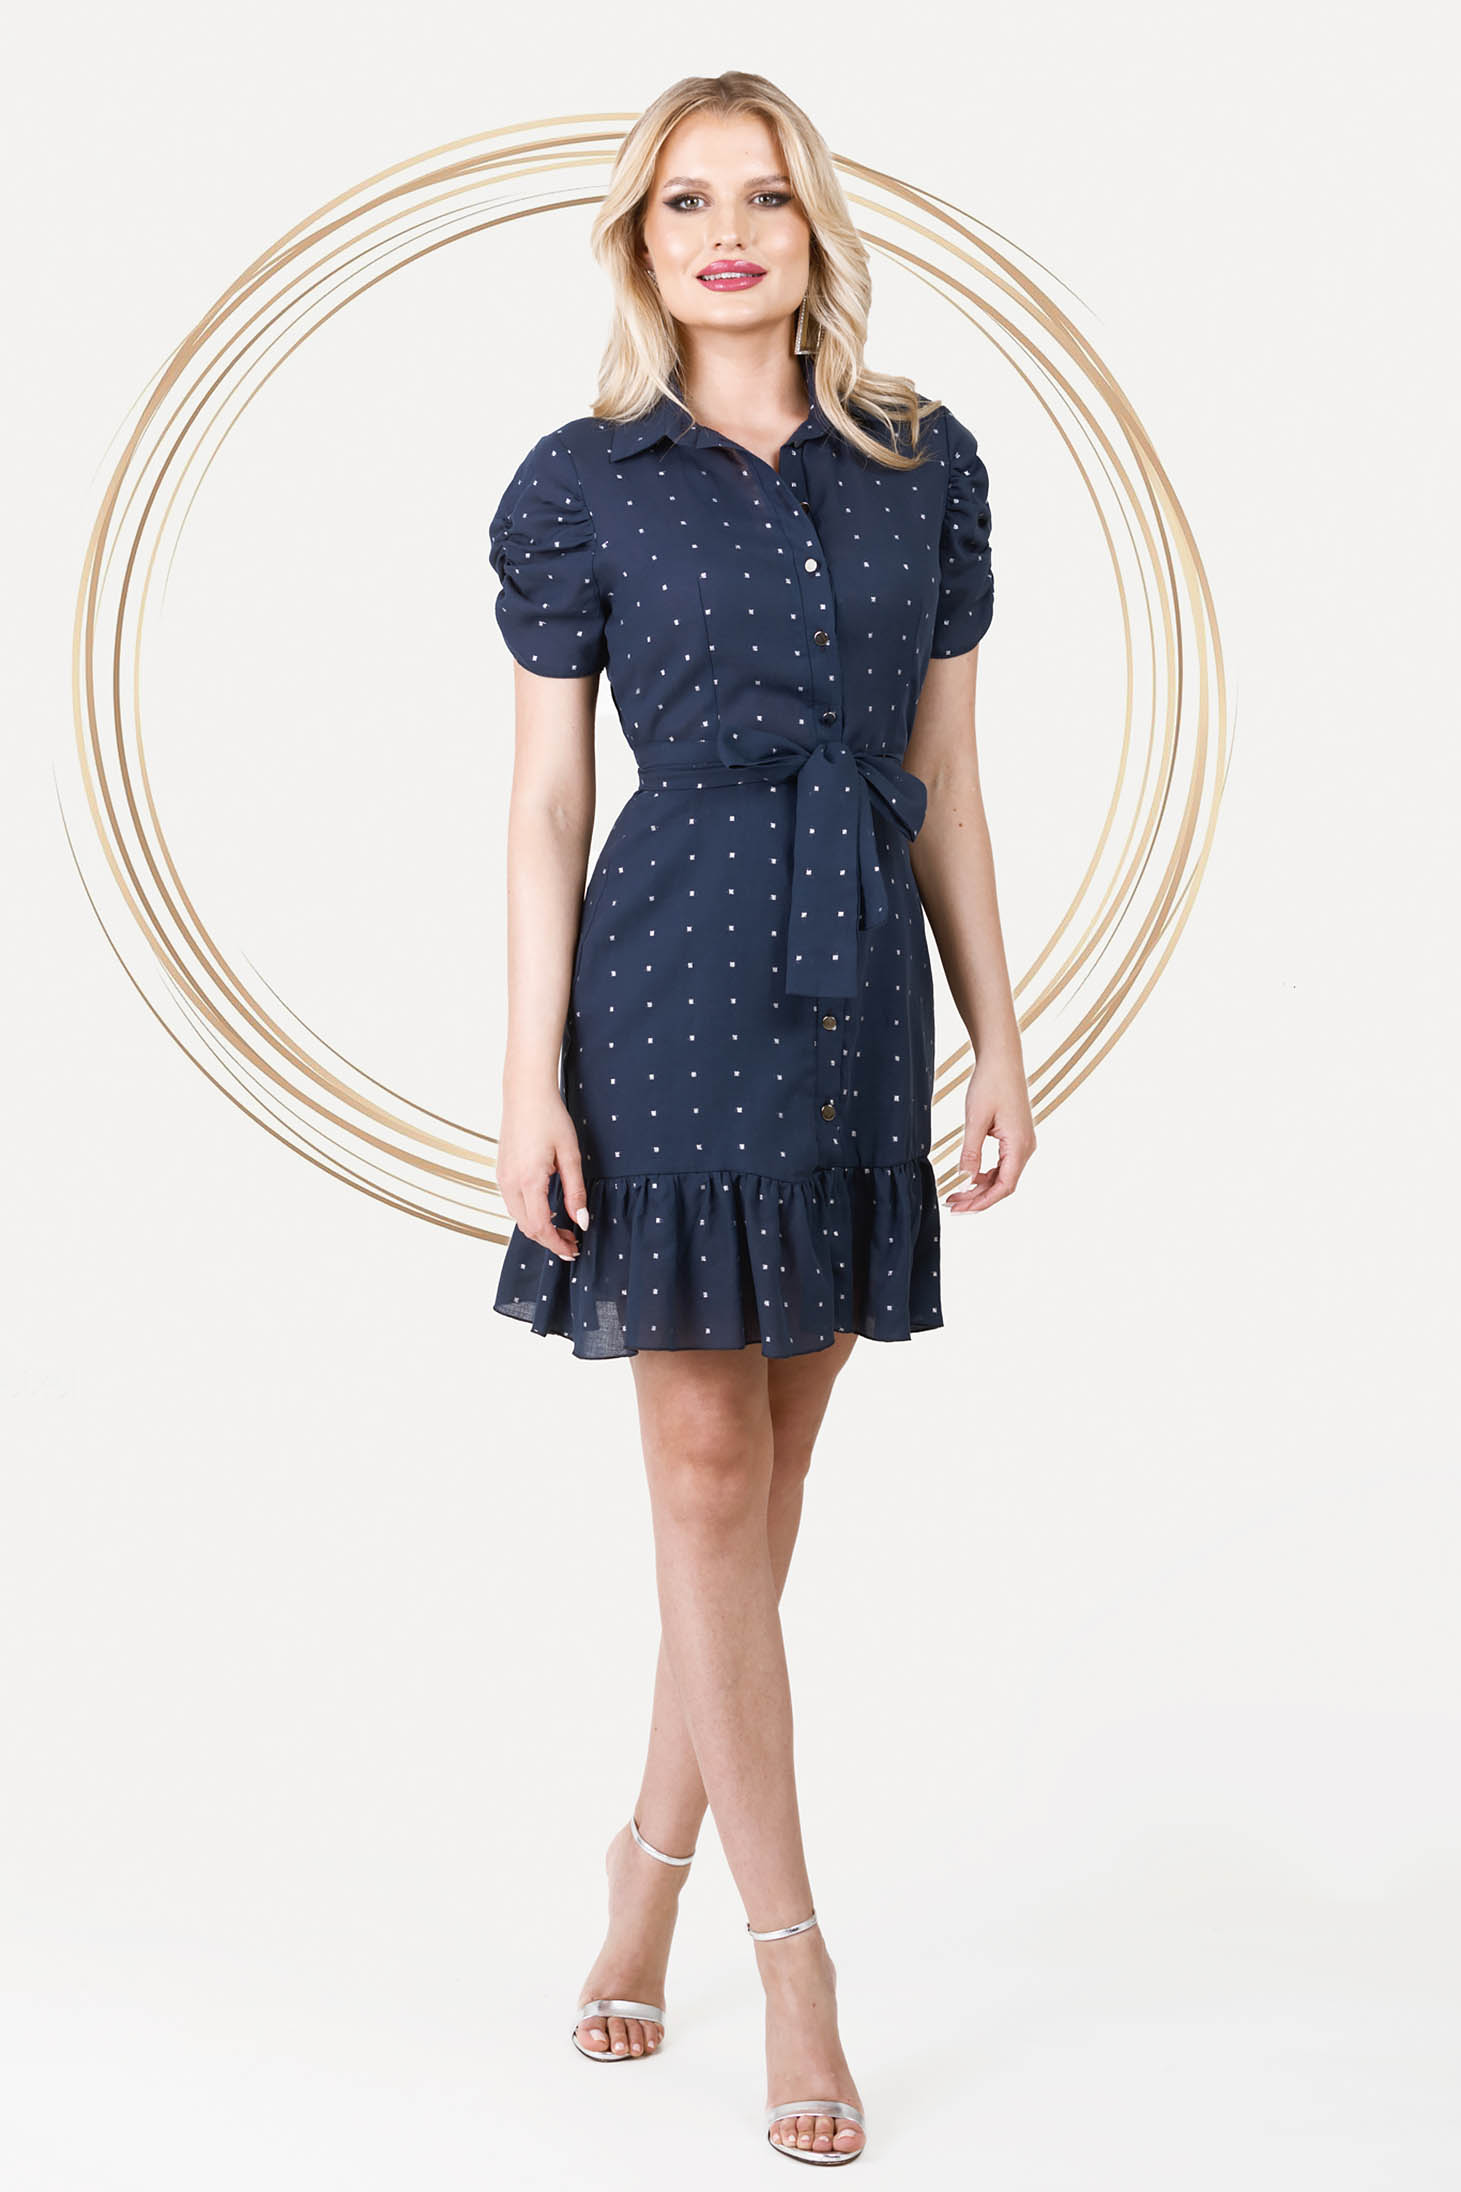 Dress short cut cotton short sleeves with ruffles at the buttom of the dress